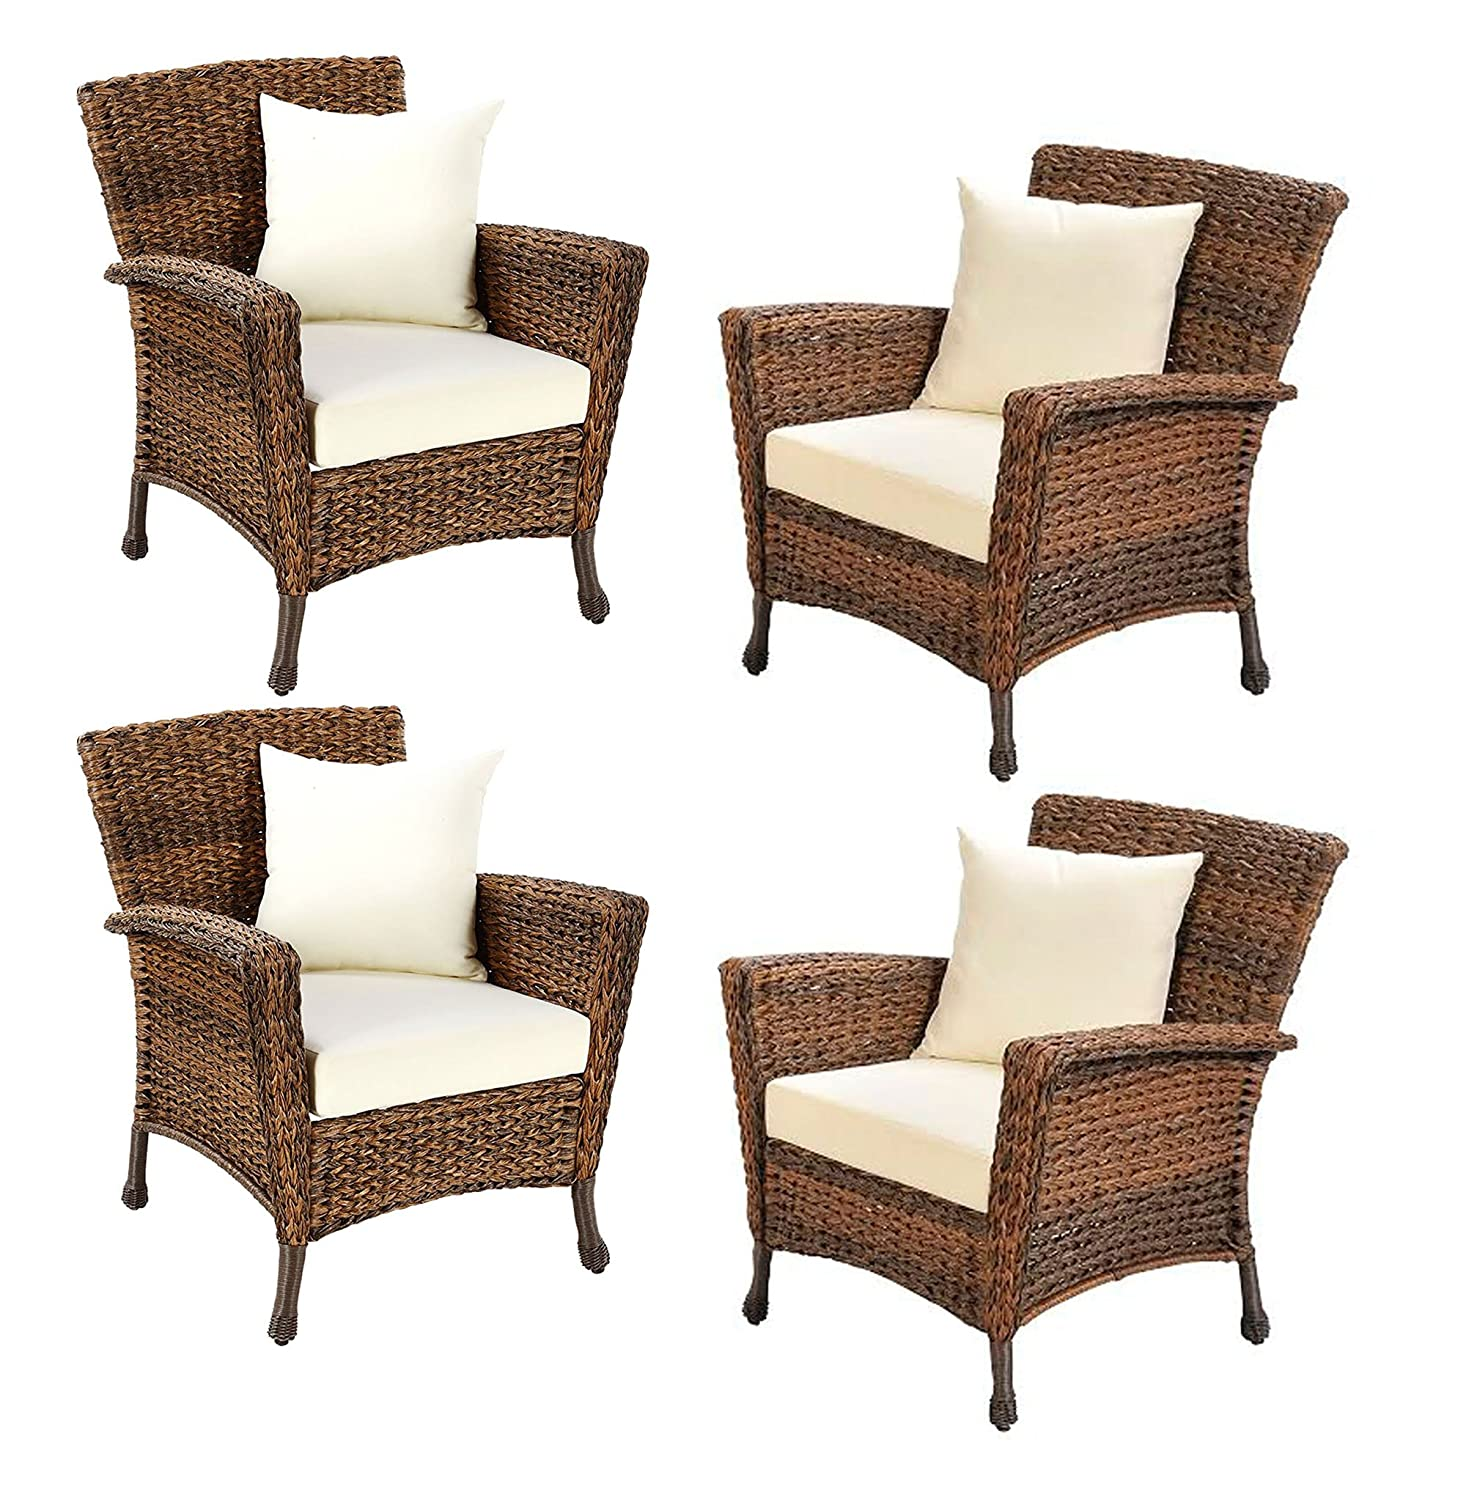 W unlimited rustic collection outdoor furniture light brown rattan wicker garden patio furniture bistro set lounger deep seating sectional cushions 4